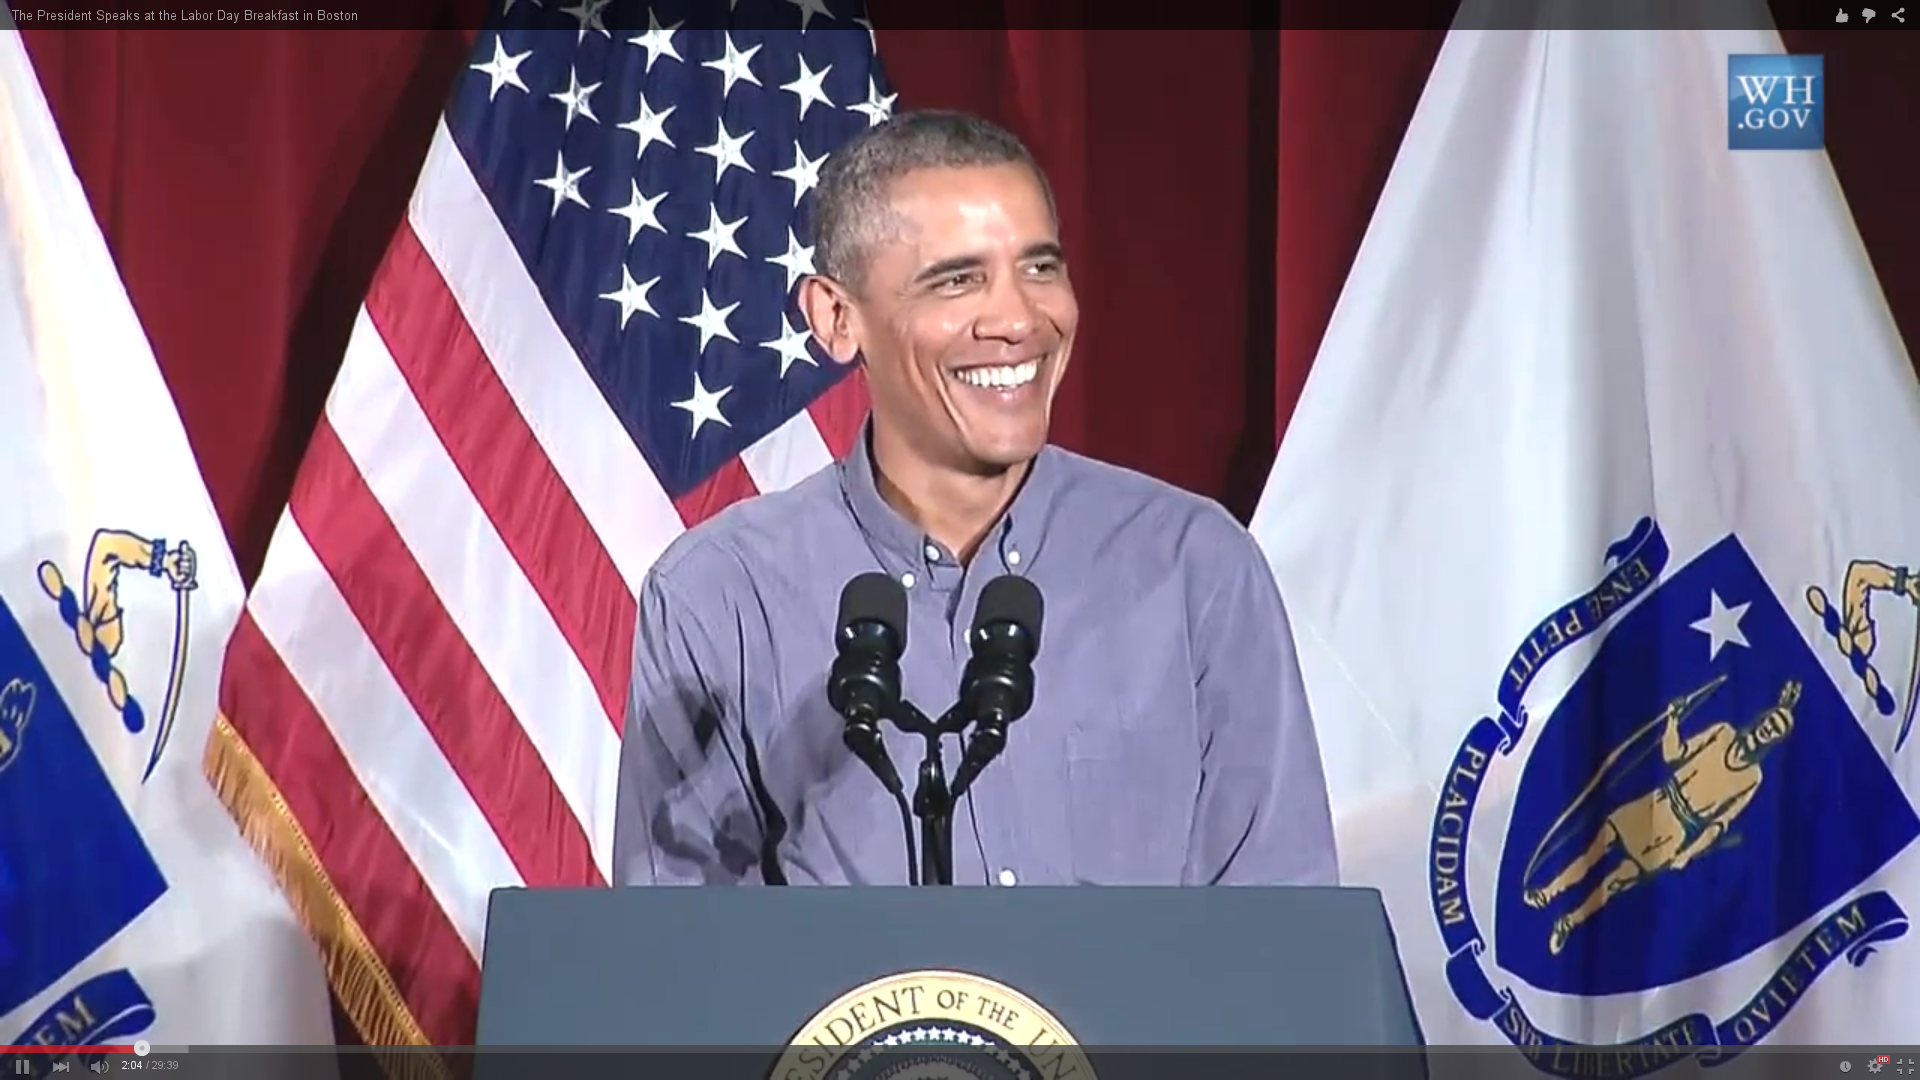 President Obama speaks at the 2015 Labor Day Breakfast